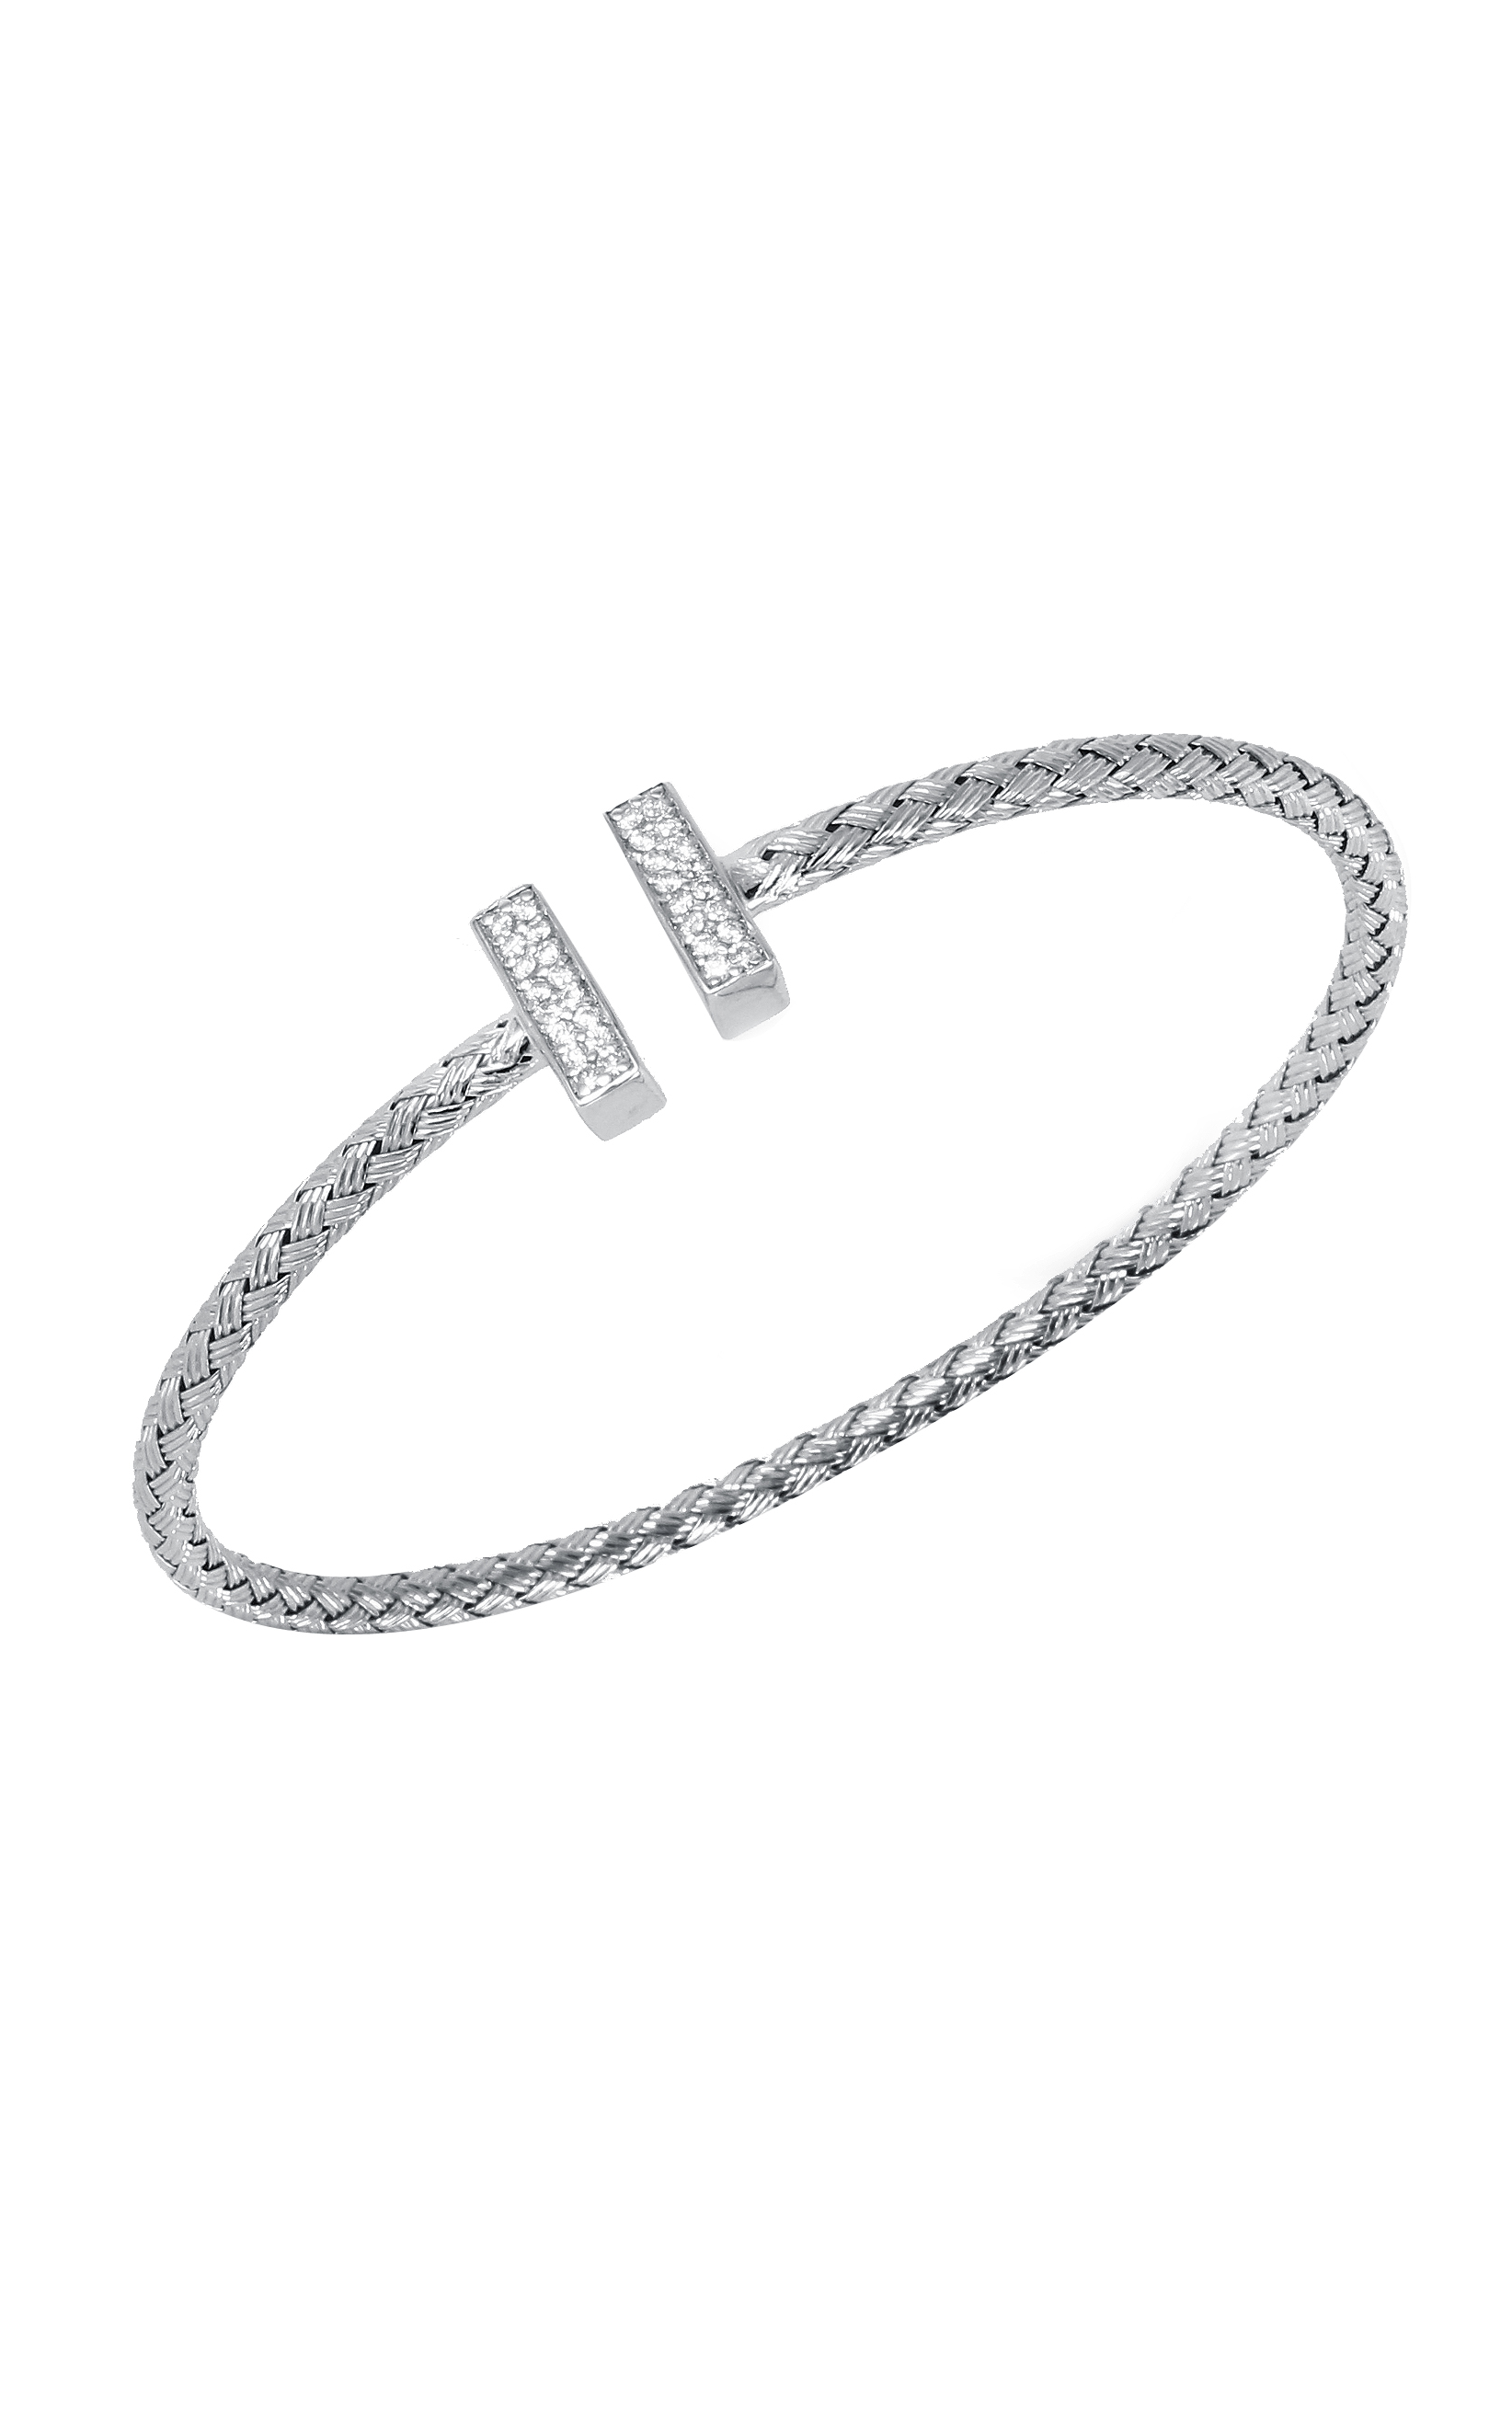 Charles Garnier Bracelet Paolo Collection MLC8182WZ product image